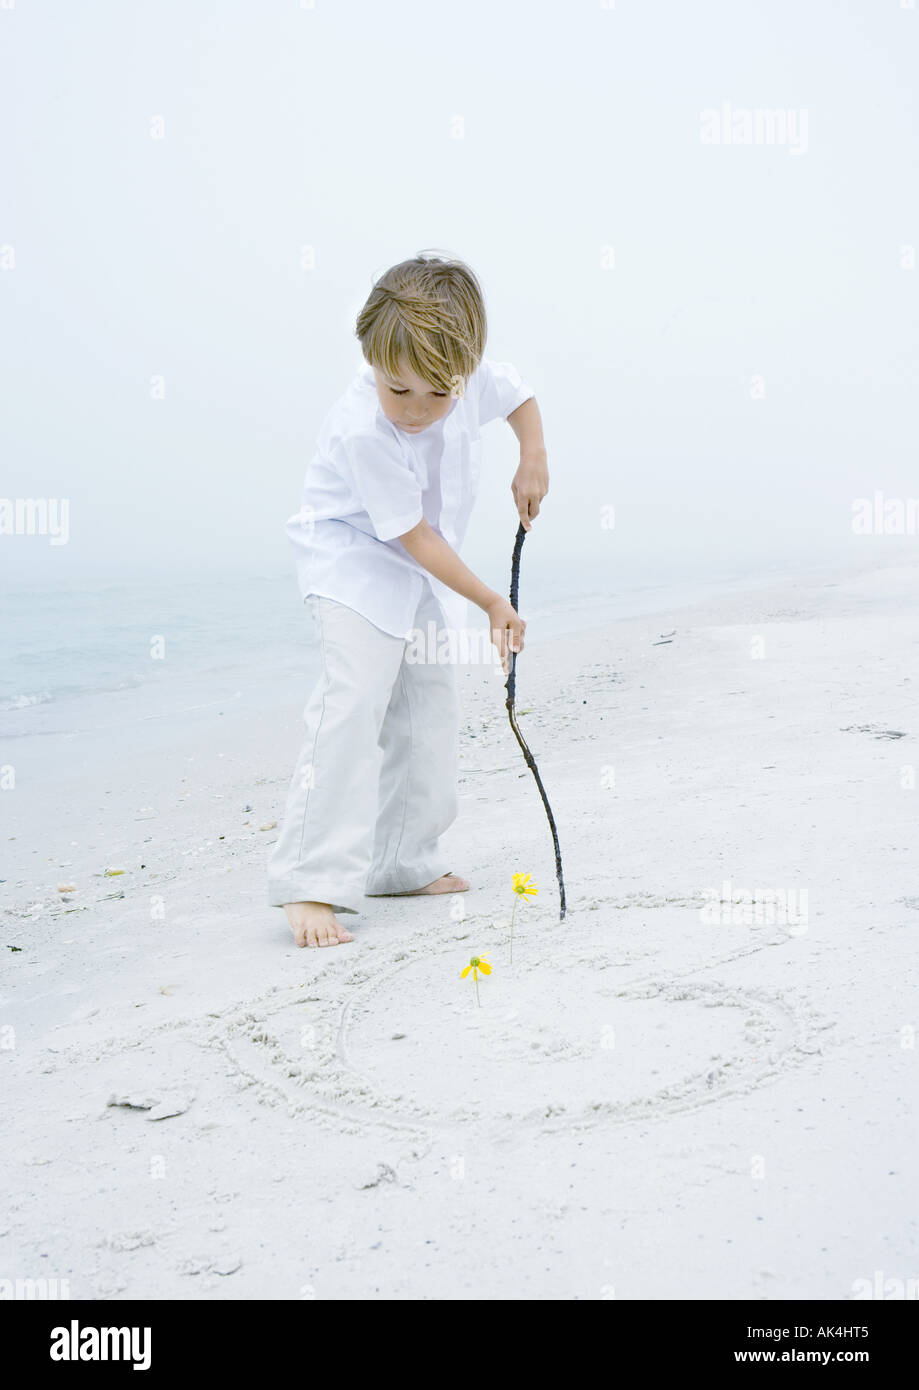 Little boy drawing heart in the sand at the beach - Stock Image